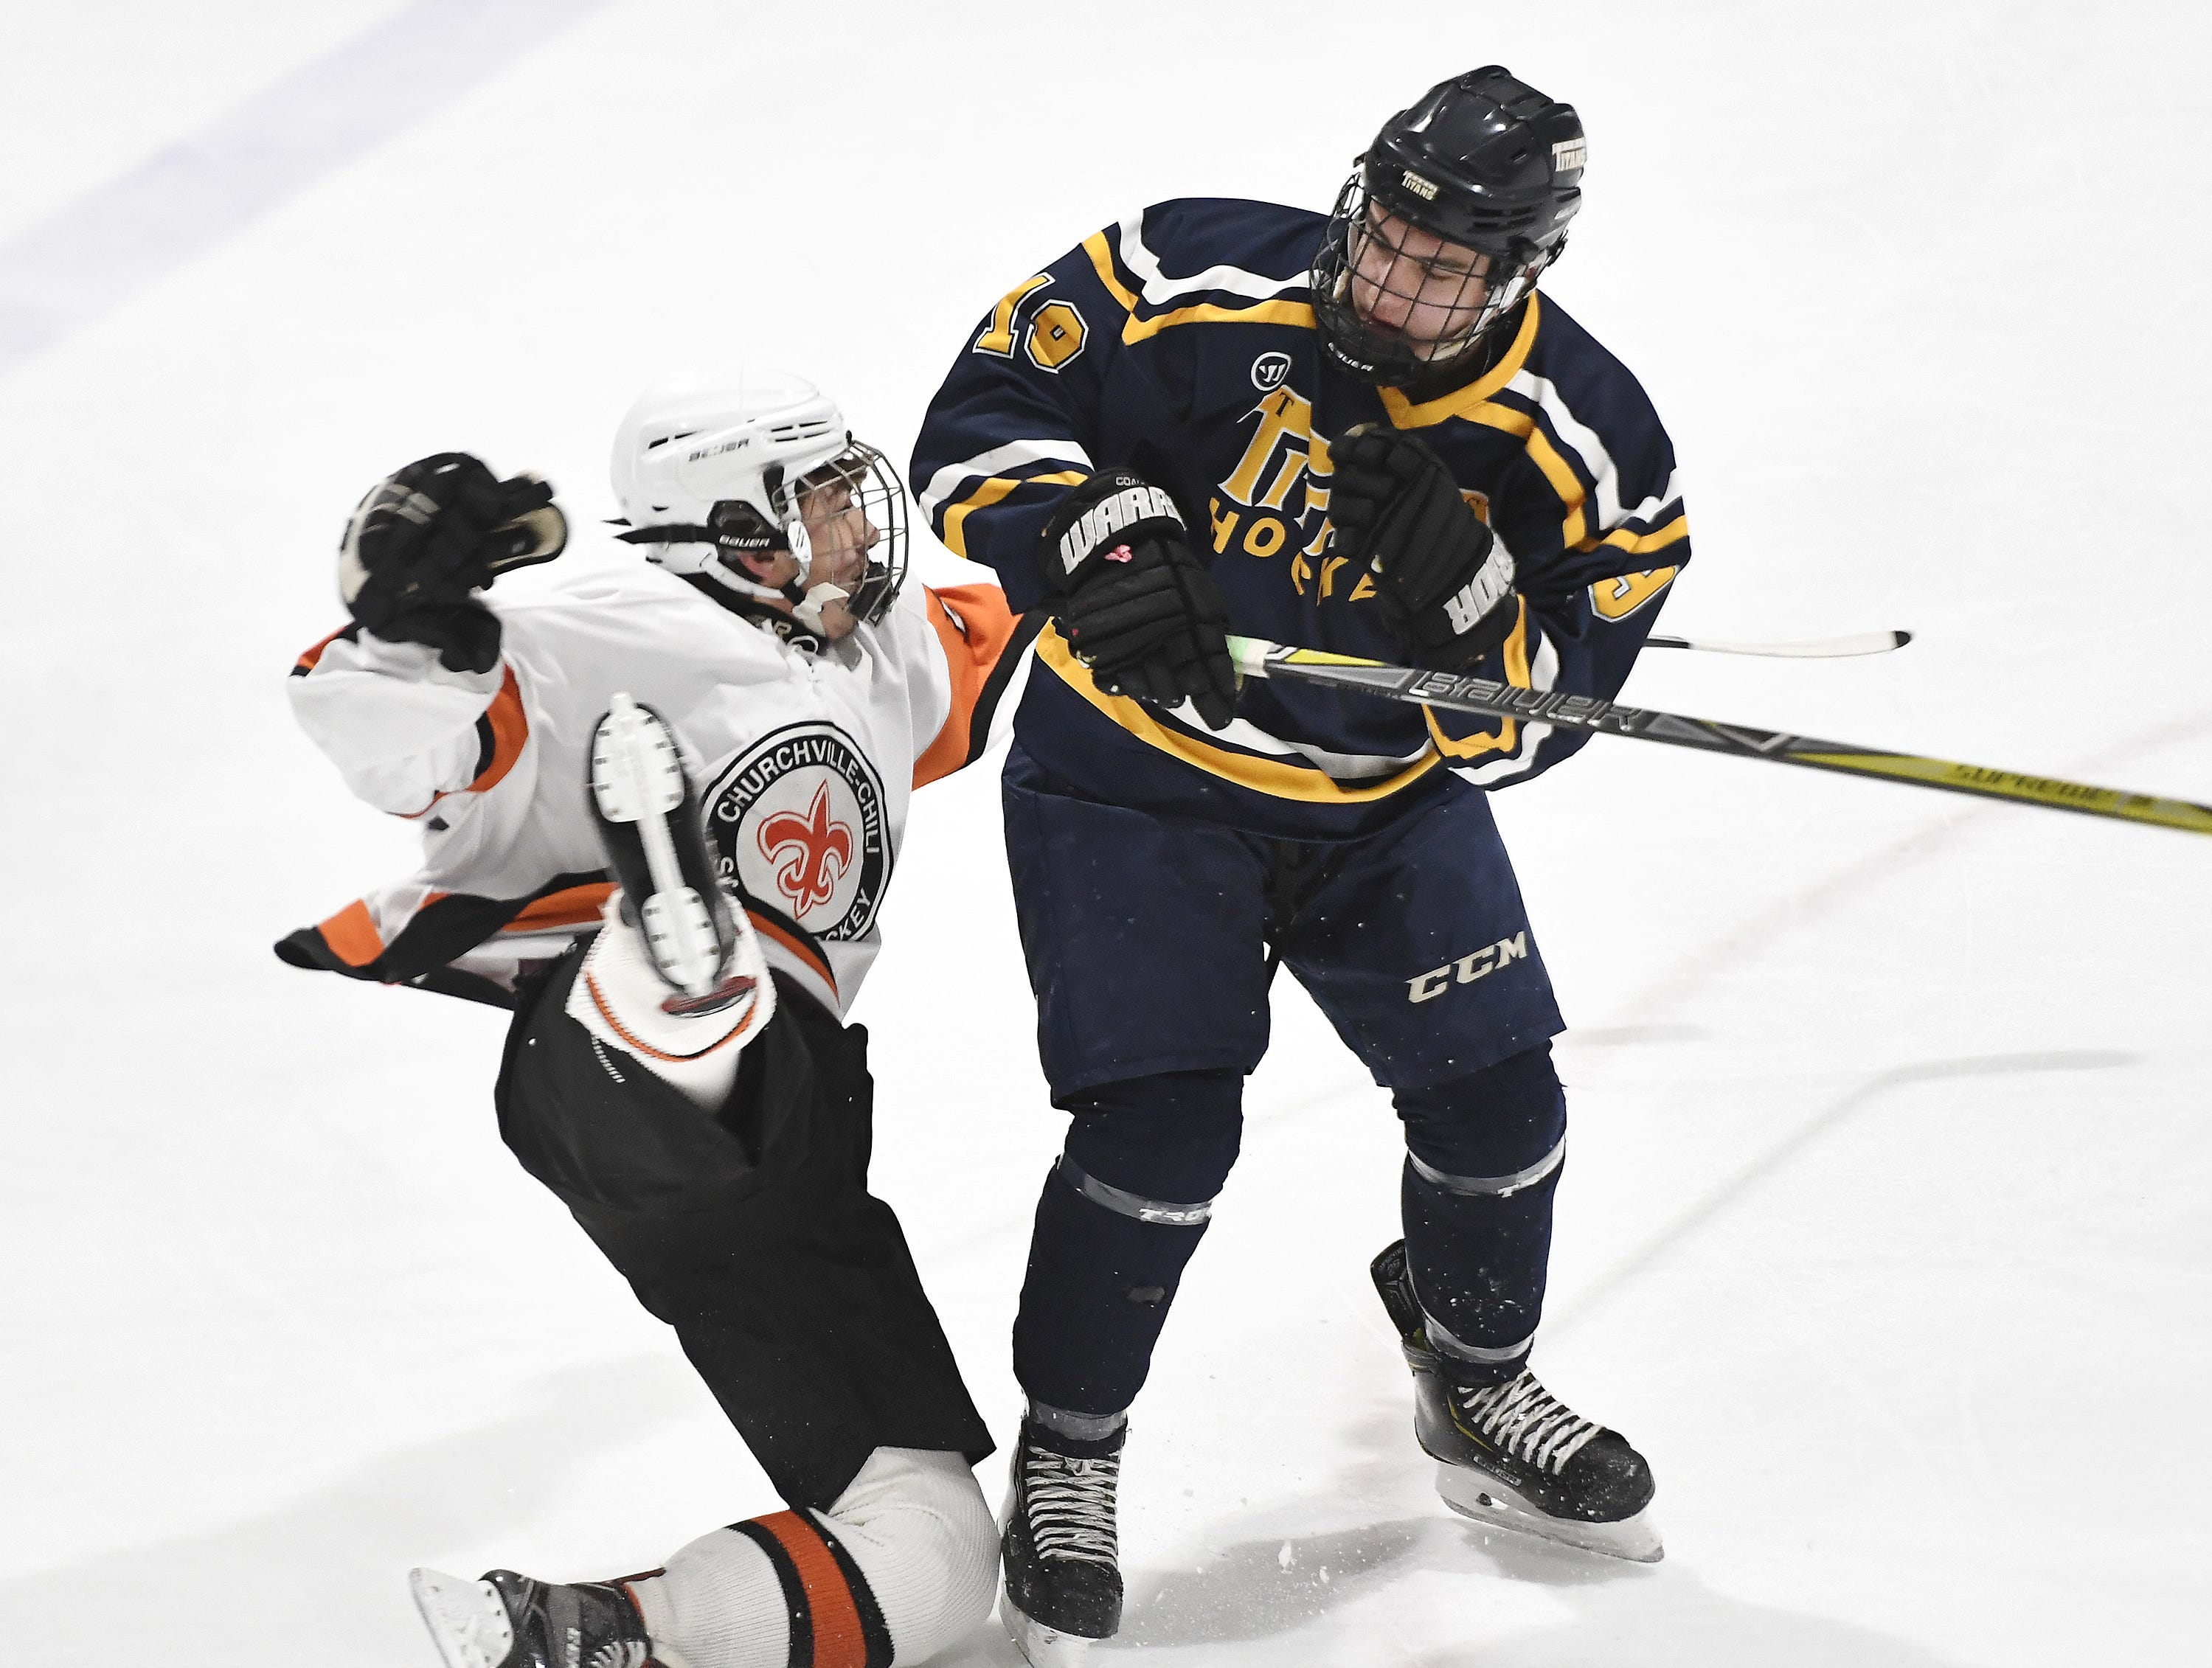 Webster Thomas' Tommy Ammon, right, checks Churchville-Chili's Colin Hess during a regular season game played at the Scottsville Ice Arena, Tuesday, Jan. 22, 2019. Webster Thomas beat Chuchville-Chili 4-1.